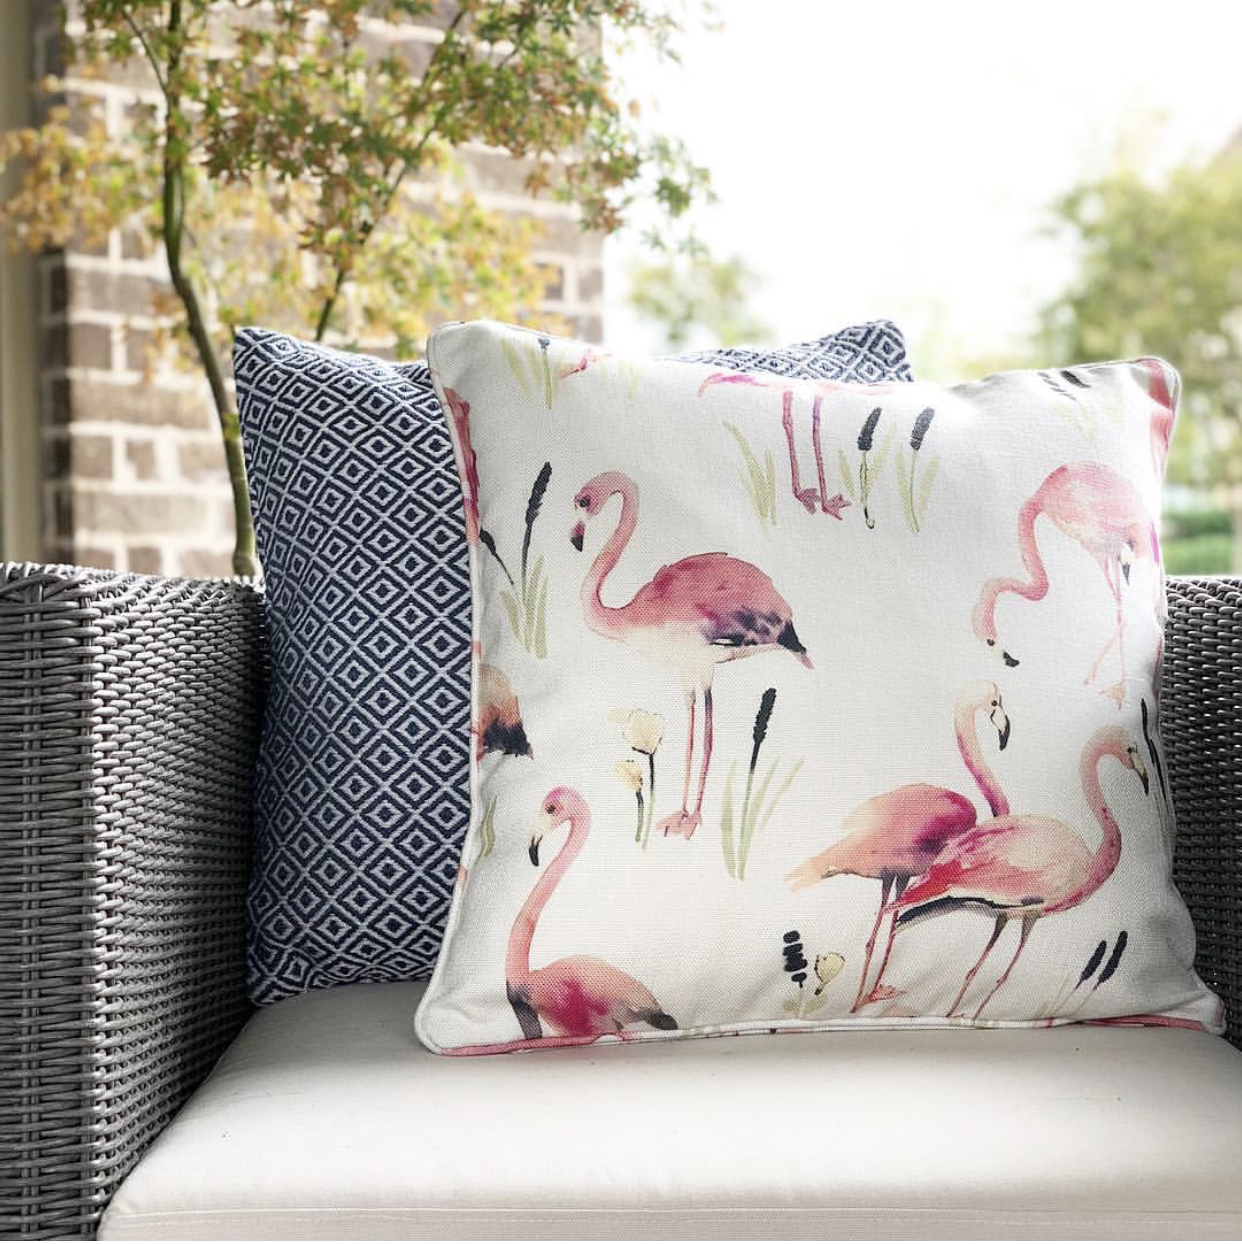 https://shop.designroots.com/collections/pillows